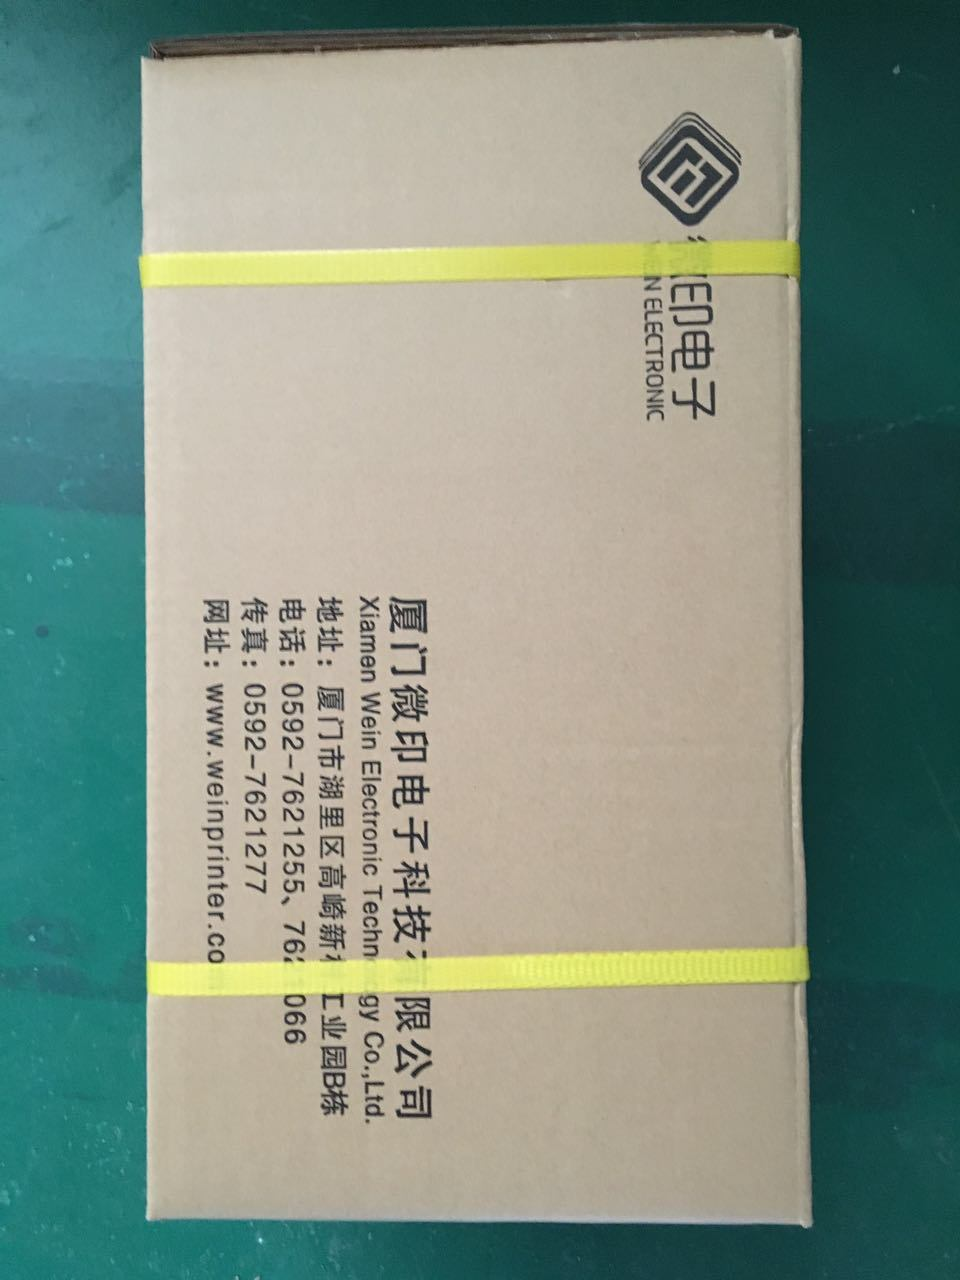 80mm Thermal Printer Mechansim Compatible with Seiko Capd347 (TMP307)